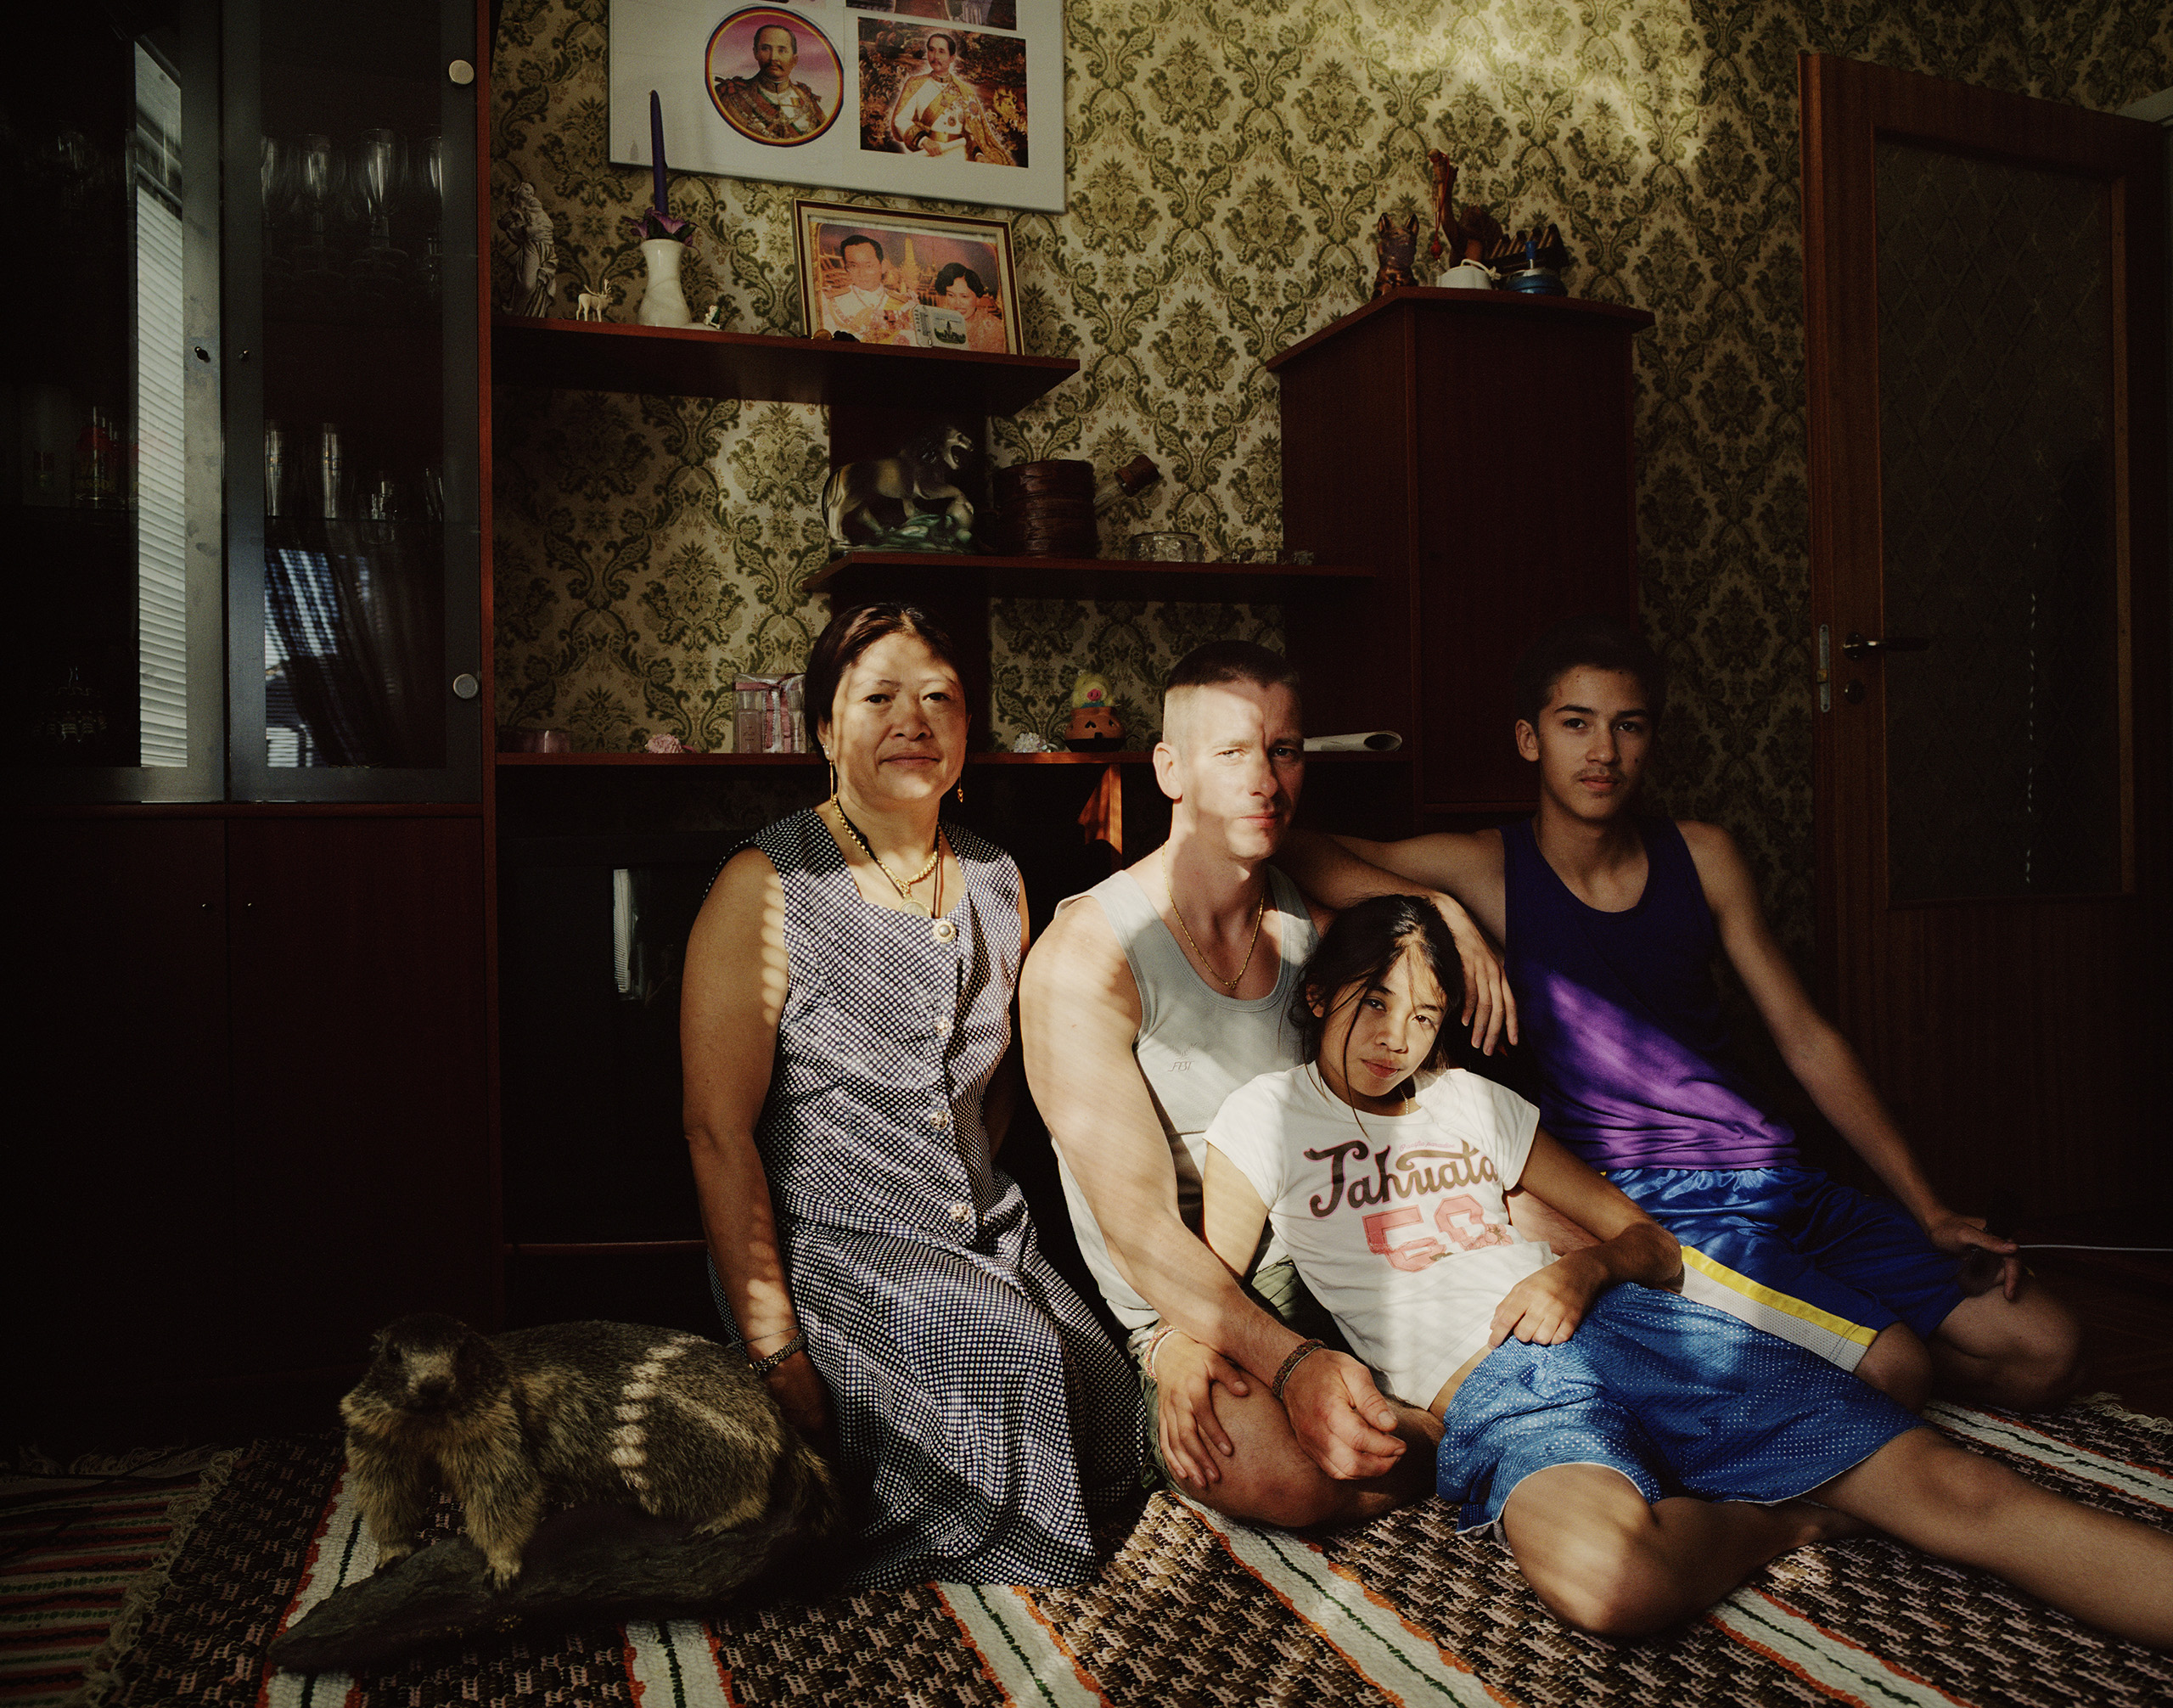 The Johansson family from Stockholm in their summer cottage, Fredrika, 2006.